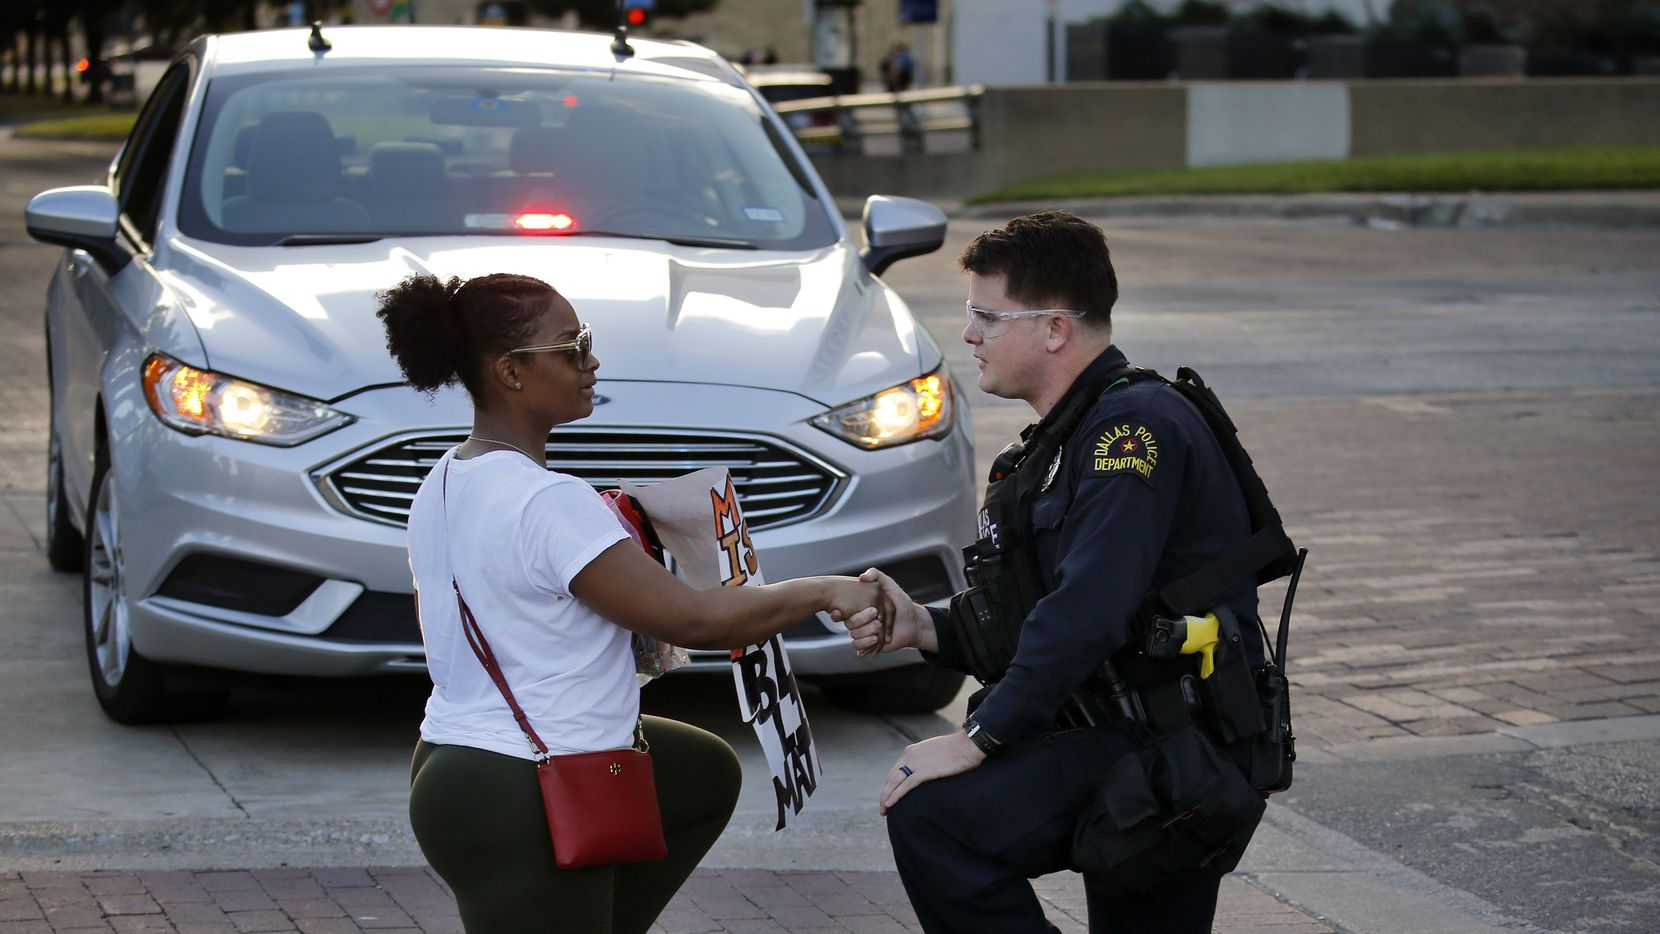 Protestor Slowanna Delavontae (left), who lives in the South Dallas area of Dallas, shakes hands with Dallas Police patrol officer Caleb Morkert after the two took a knee following a march back to Dallas City Hall, Thursday, June 4, 2020. Morkert listened to the grievances of Delavontae as curfew neared. The protestors were marching in response to the in-custody death of George Floyd in Minneapolis.